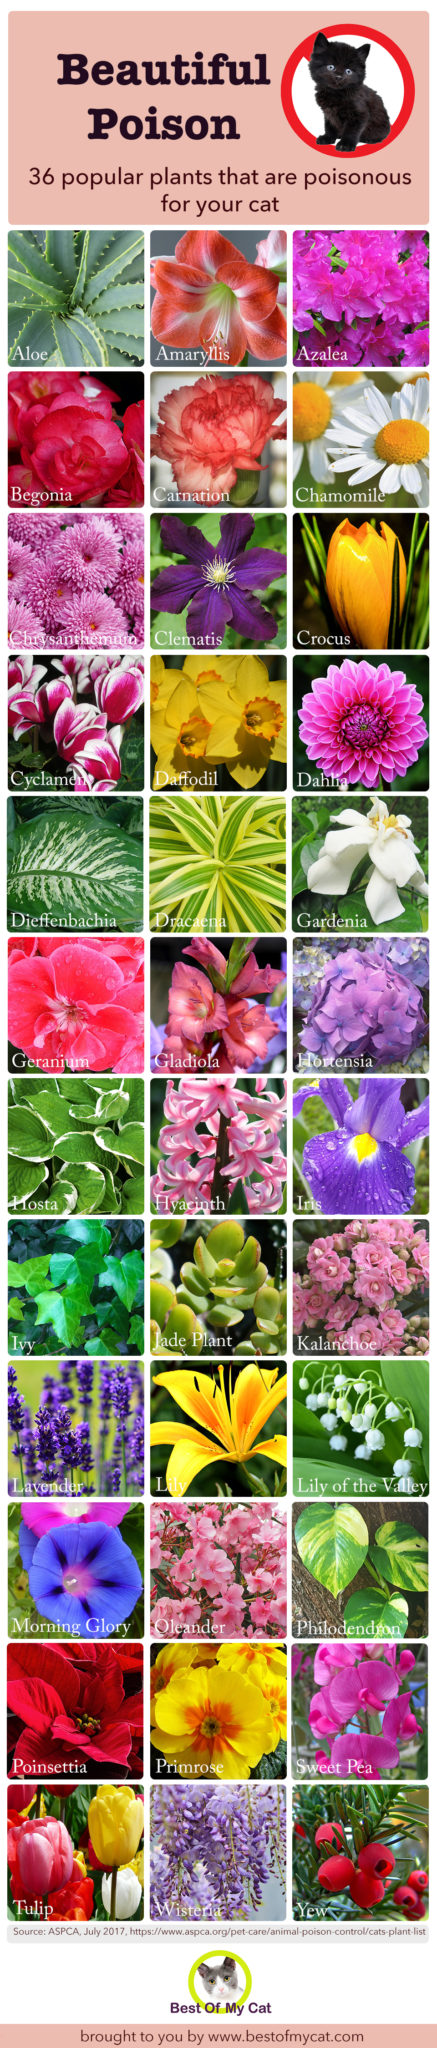 plants poisonous to cats infographic best of my cat. Black Bedroom Furniture Sets. Home Design Ideas